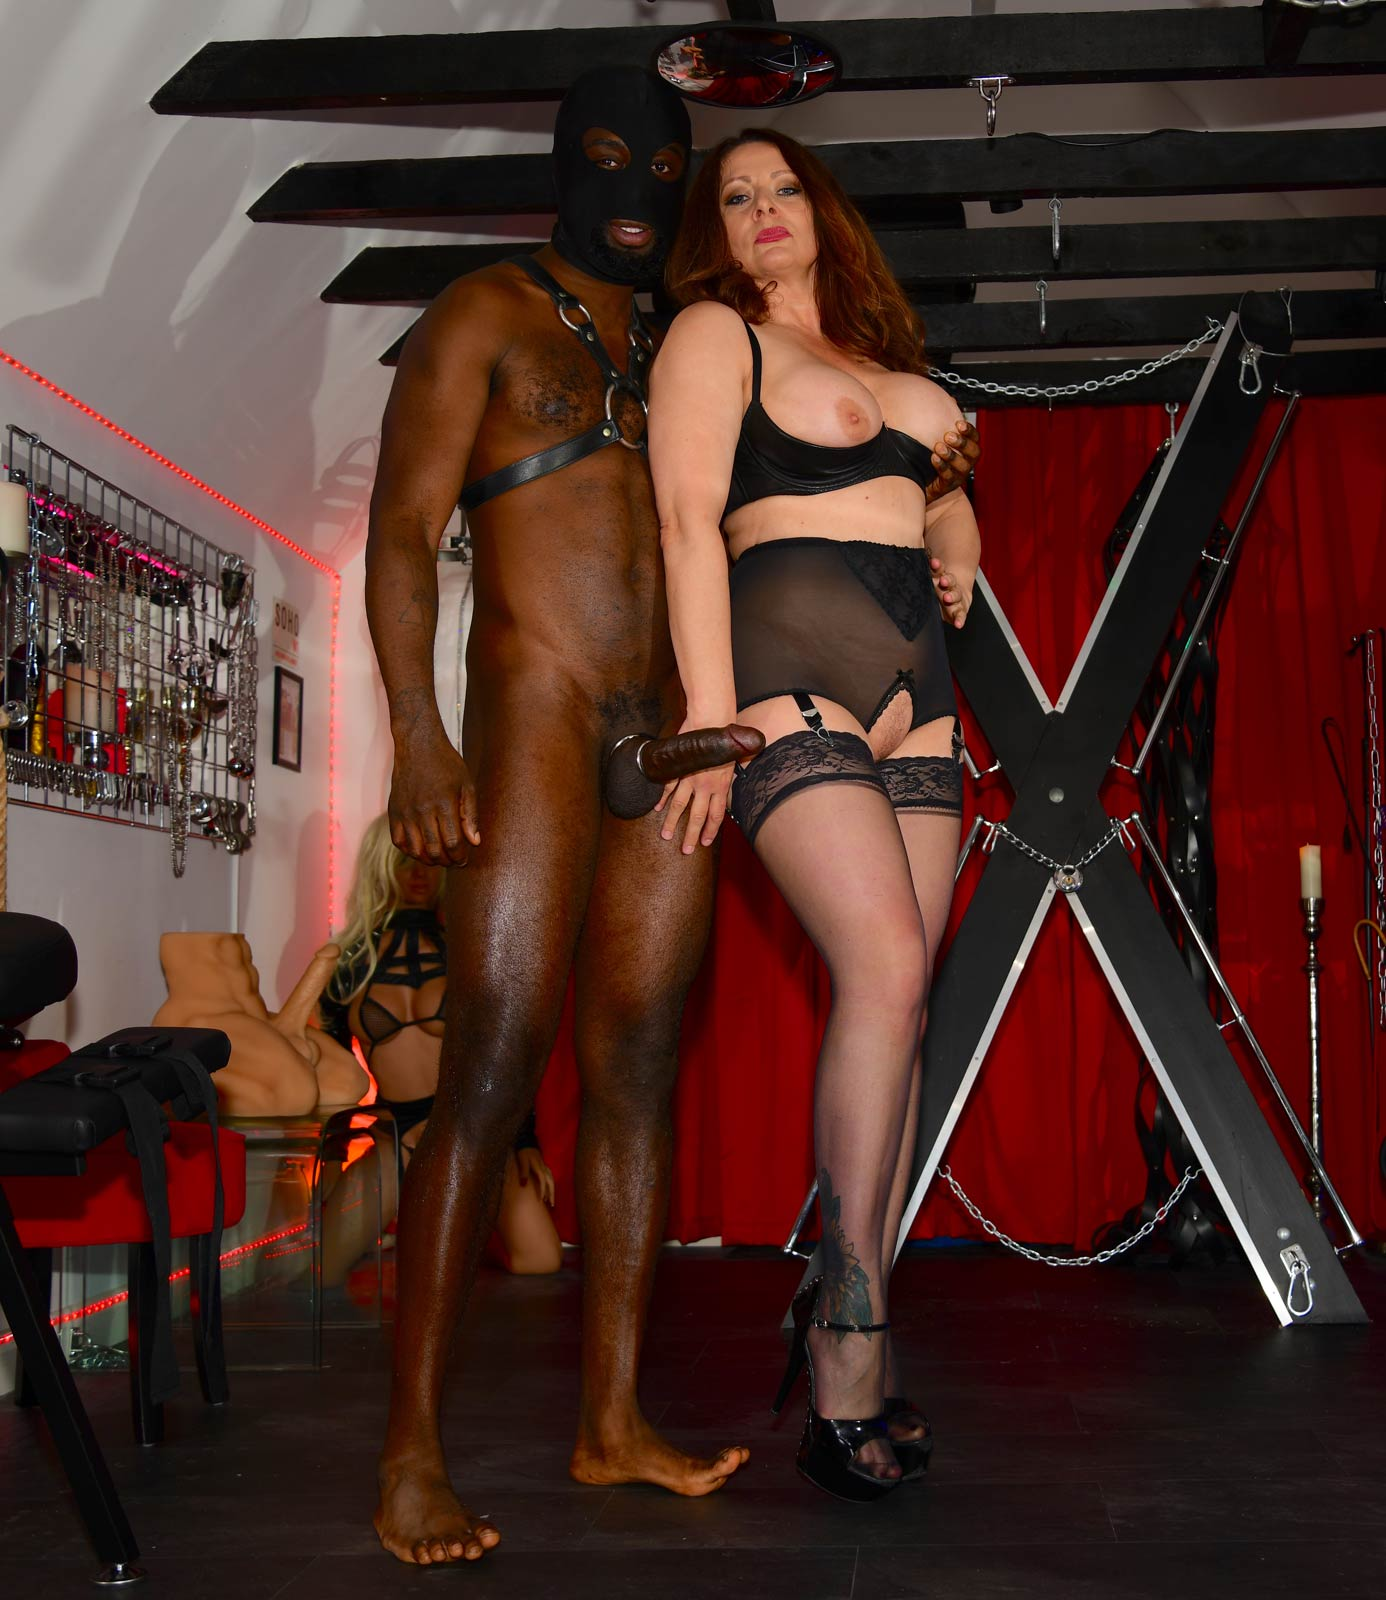 Cuckold and Enforced Bi with Mistress Carly and Her Black Stallion